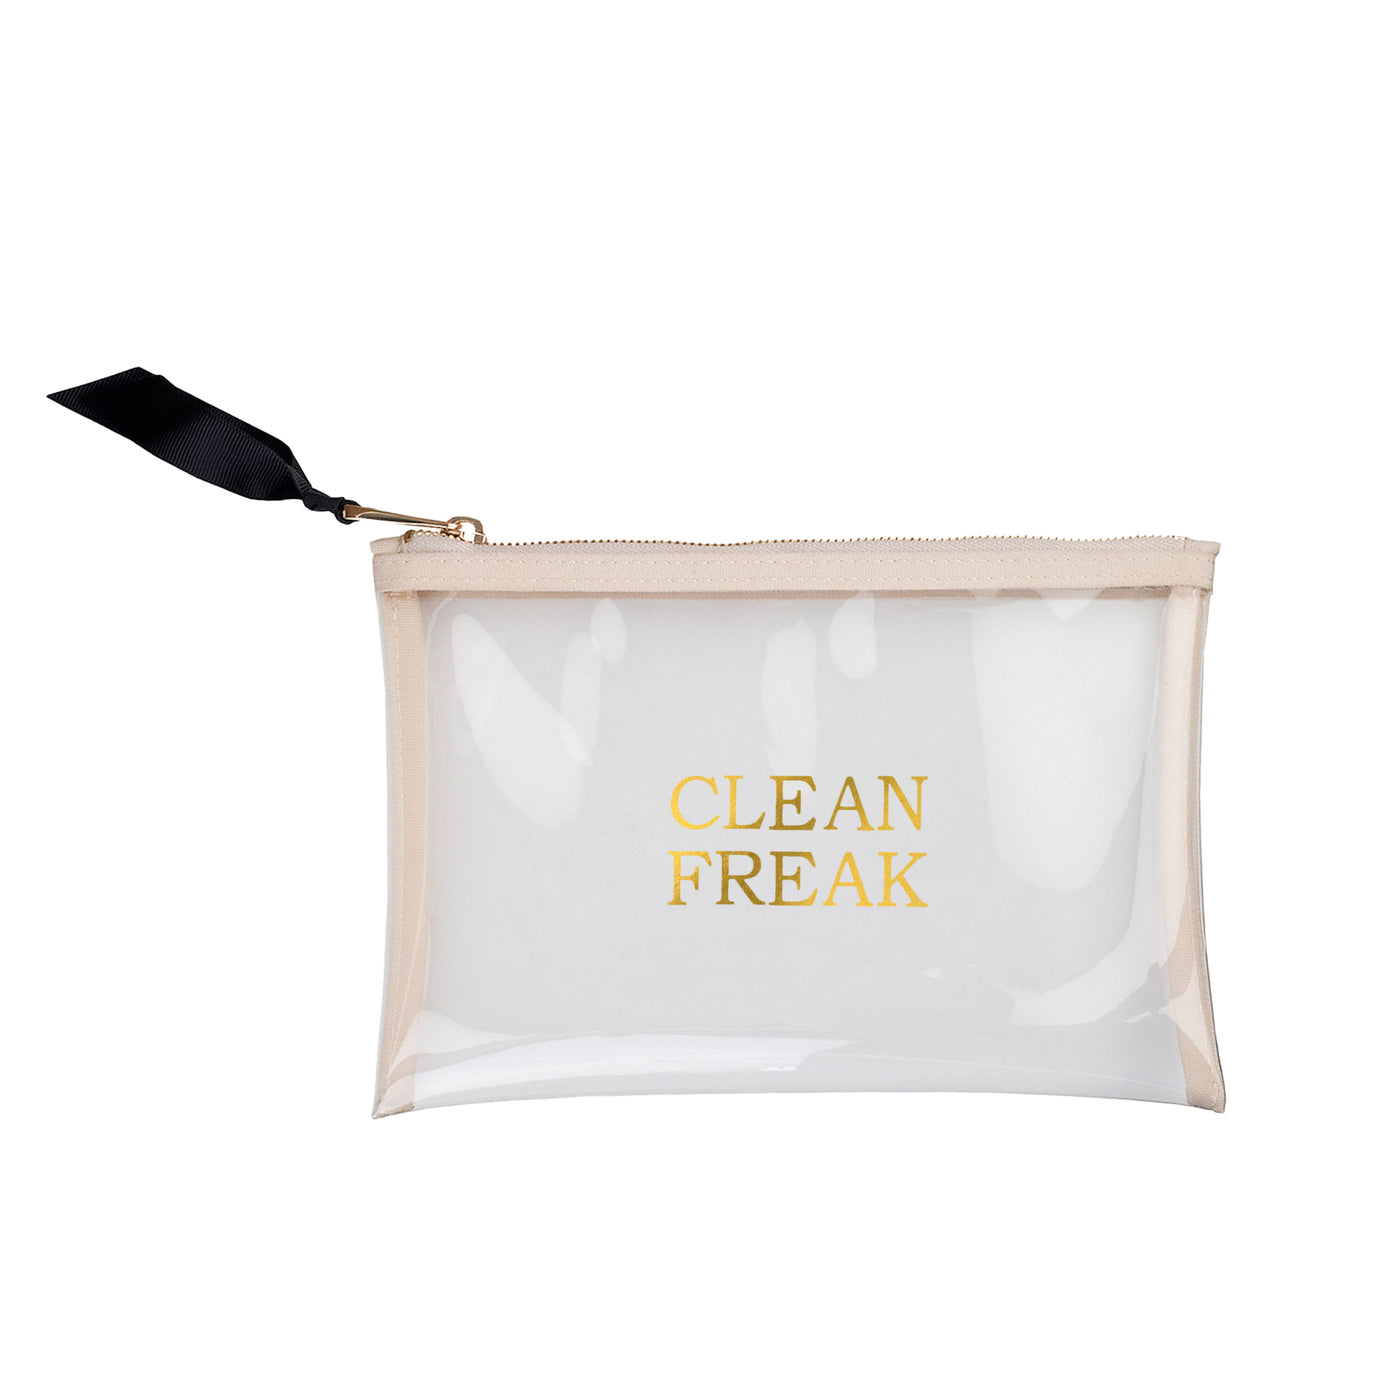 Dolly Zipper Pouch - Clean Freak